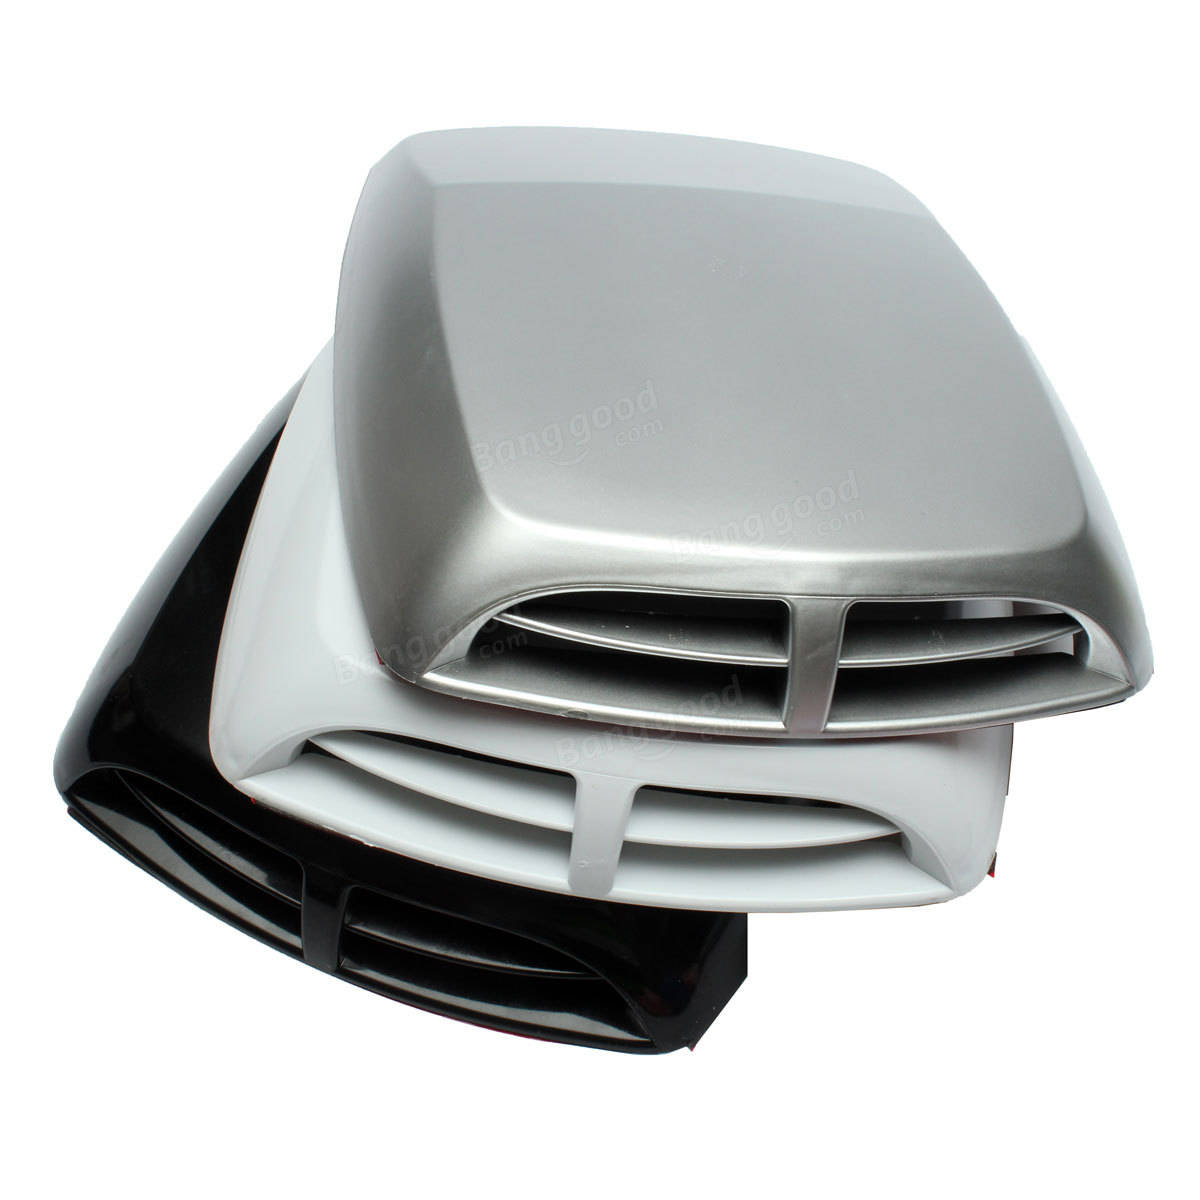 33x24cm Universal Plastic Car Air Flow Intake Engine Hood Bonnet Vent Cover Decoration